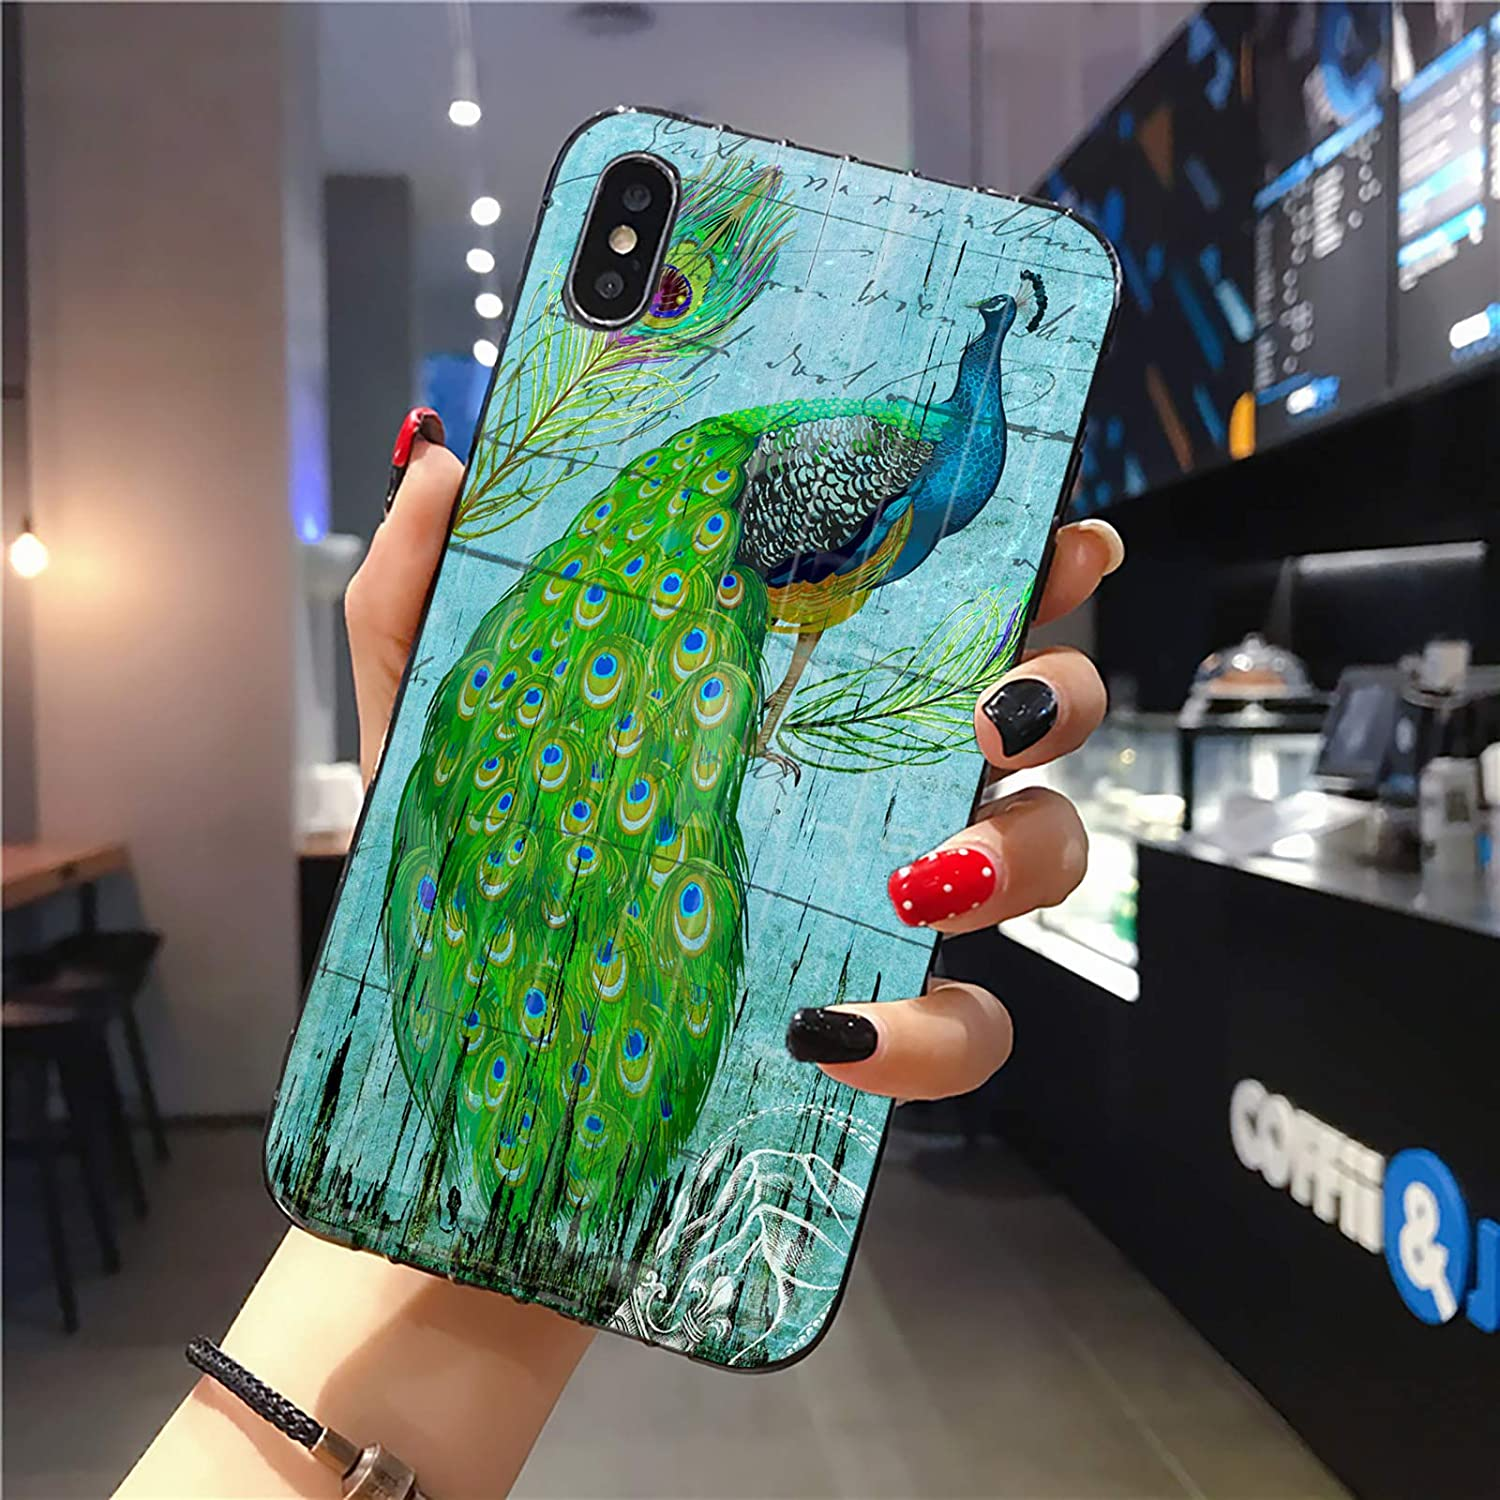 Compatible with iPhone Xs Max Case   Tough Groove   Soft TPU Engraved Grooves Phone Case   Shockproof Anti-Scratch   Peacock Animal Wood Grain Illustration